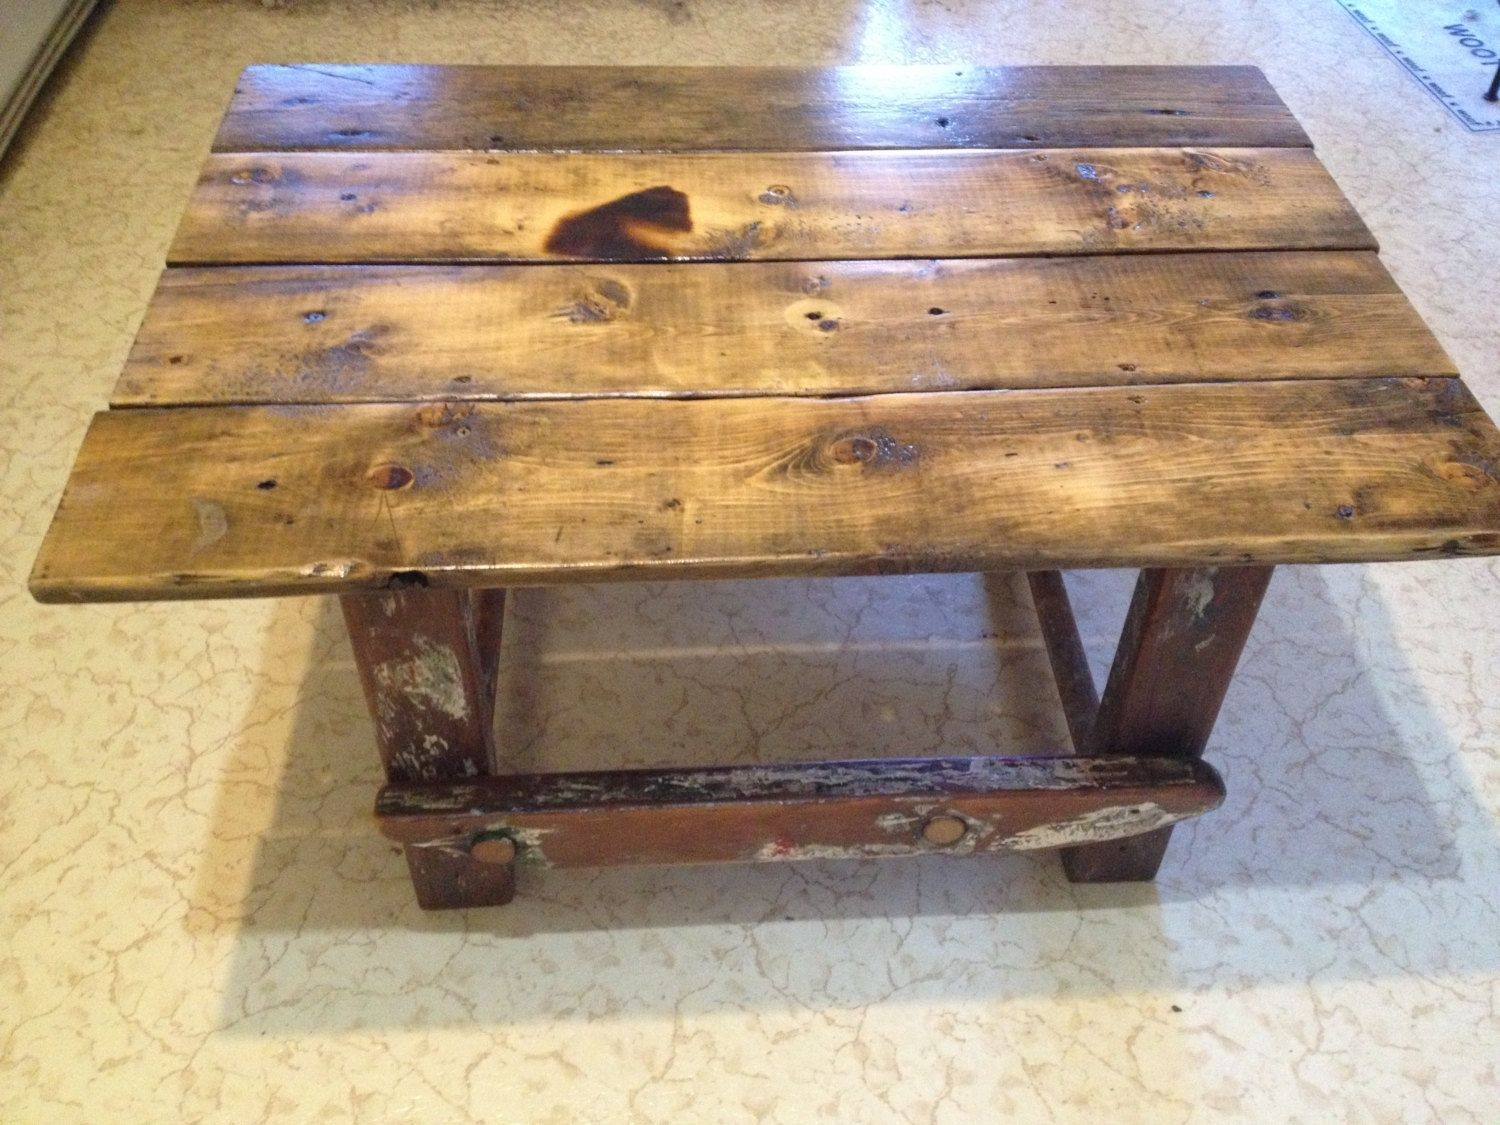 Custom Painters Ladder And Rustic Work Table Wood Coffee Table - Reclaimed wood work table